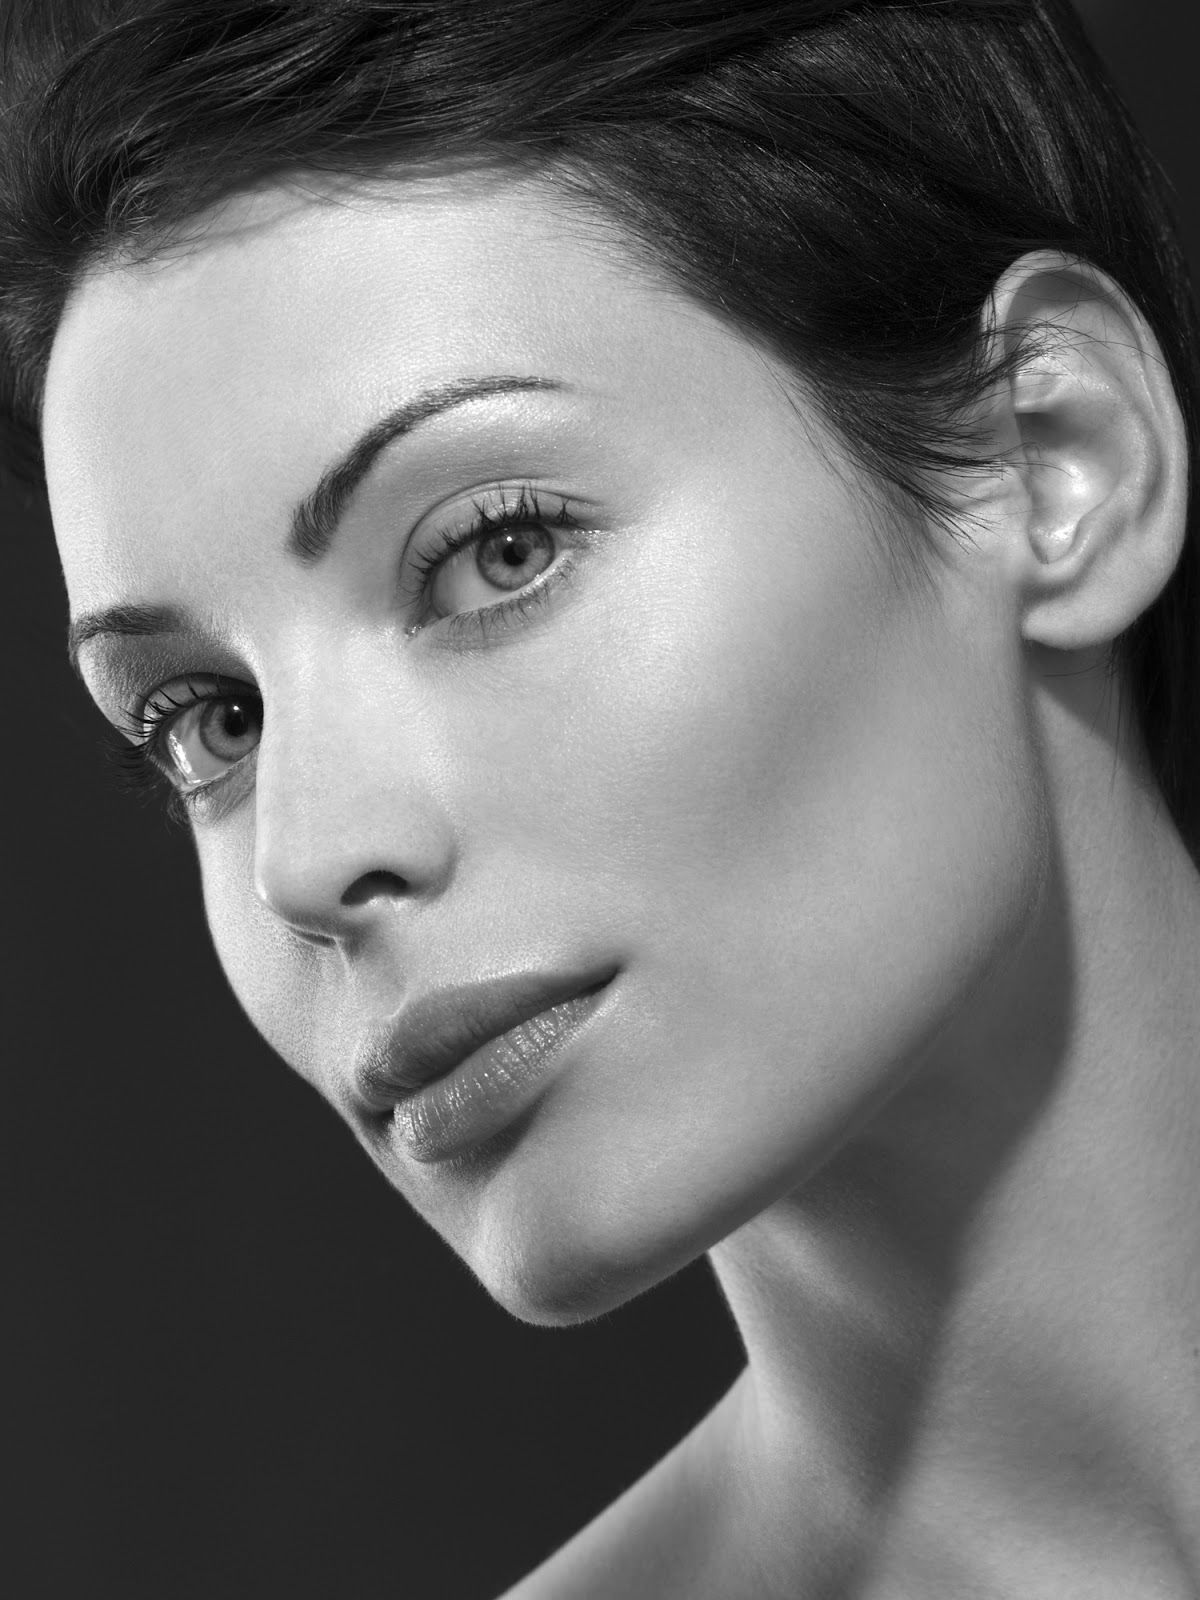 Yoanna house black and white beauty shots